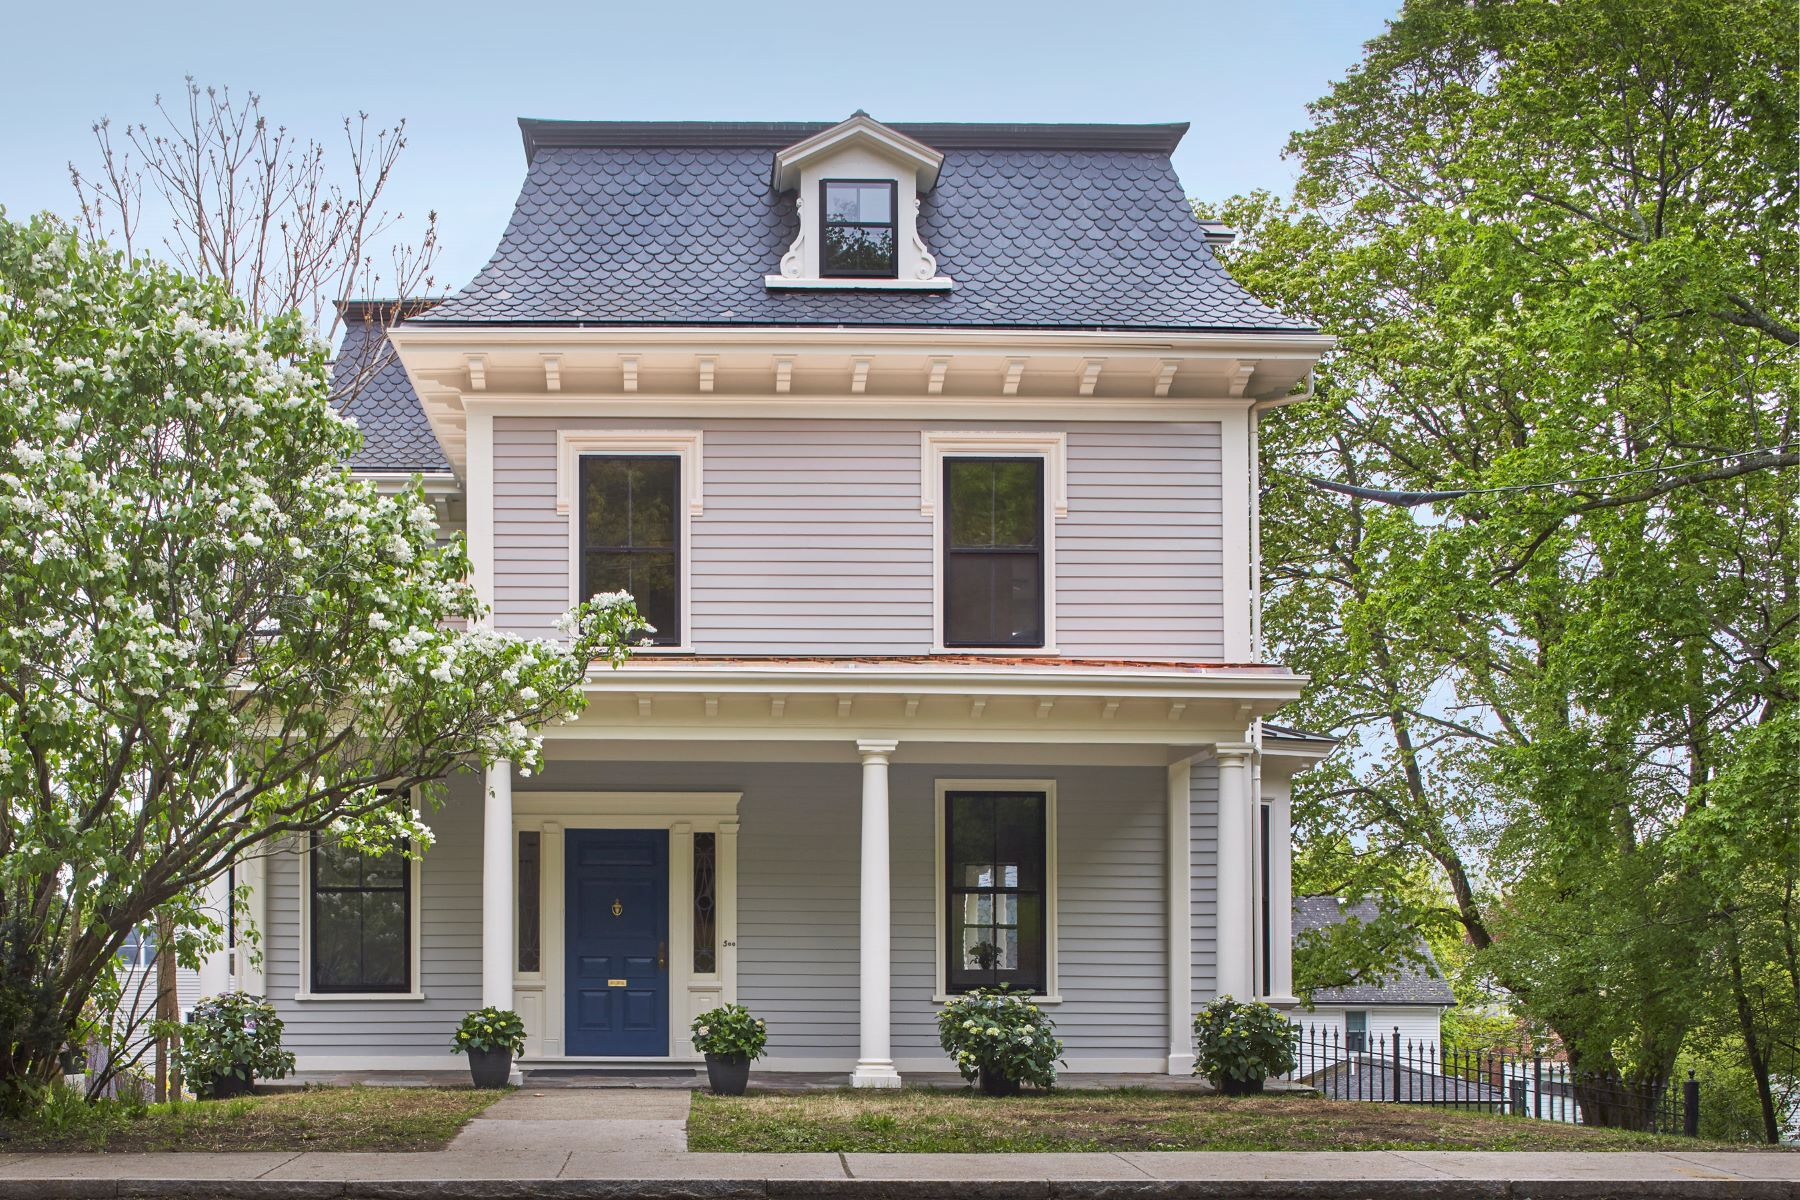 Single Family Home for Active at 500 Pleasant Street Belmont, Massachusetts 02478 United States